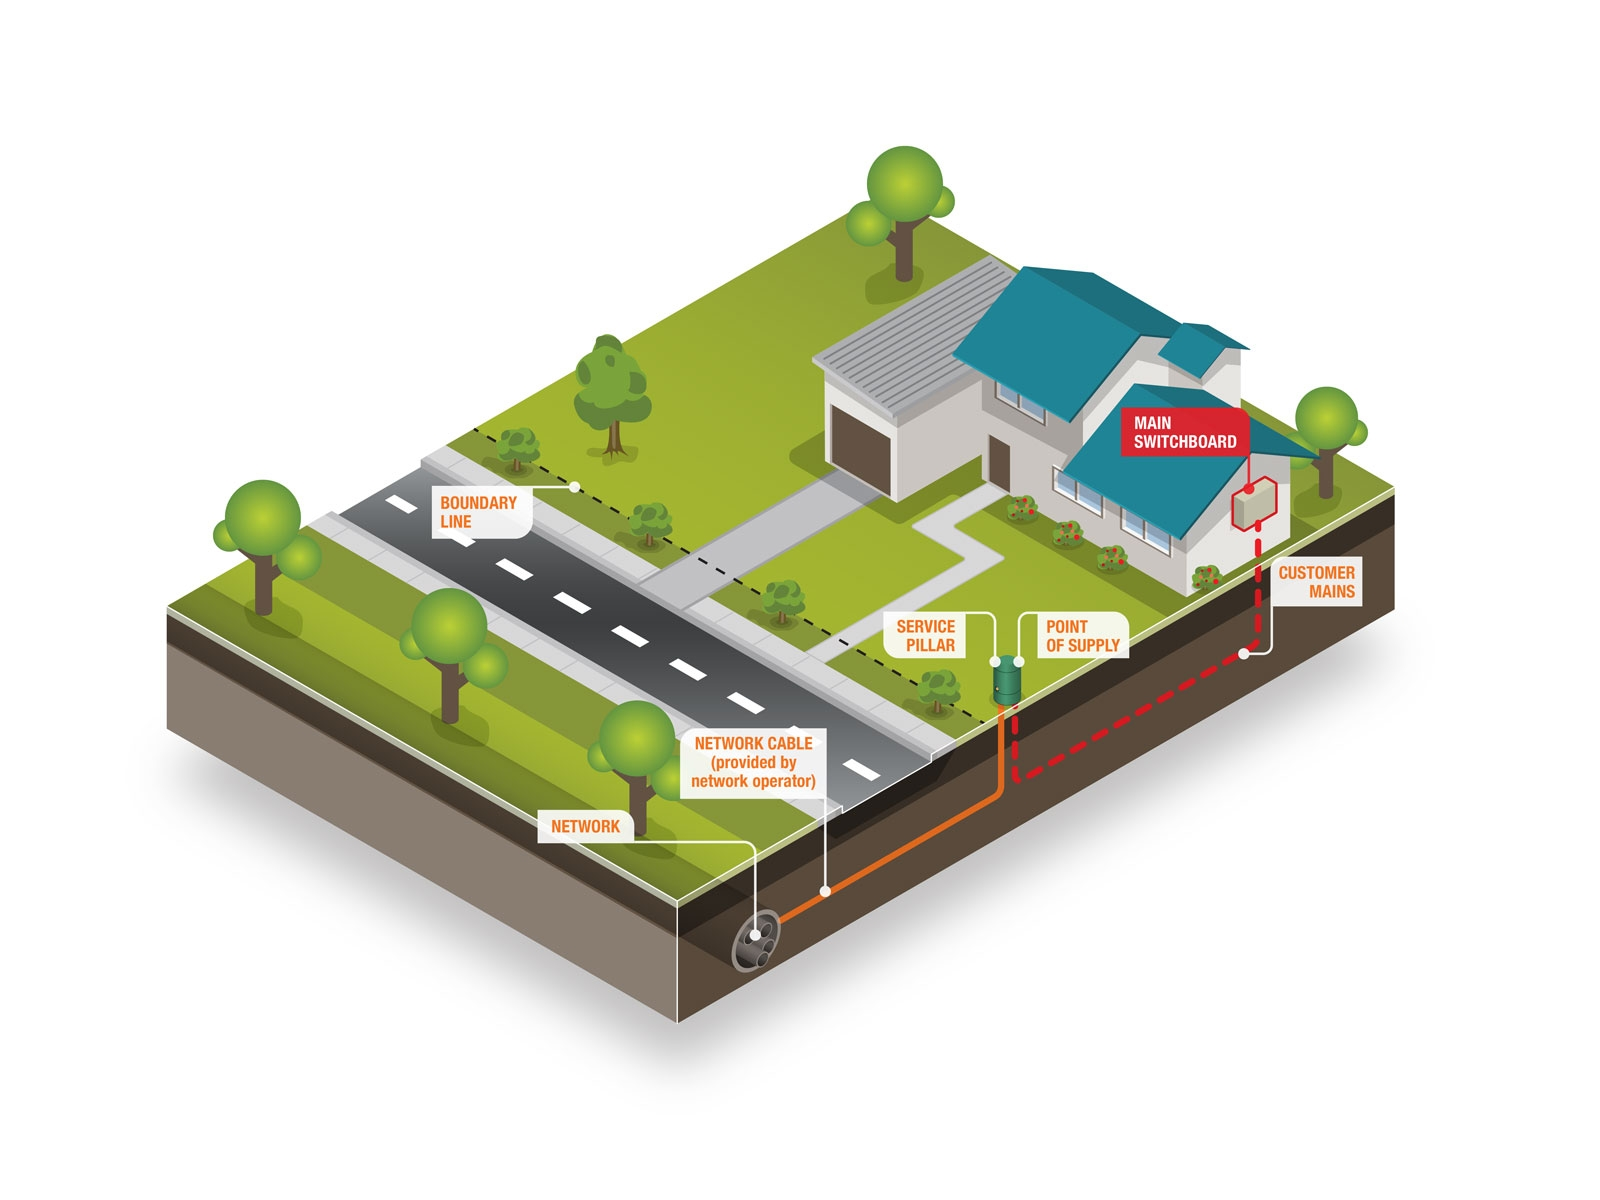 Technical illustration showing power supply to domestic house from power network using network cable